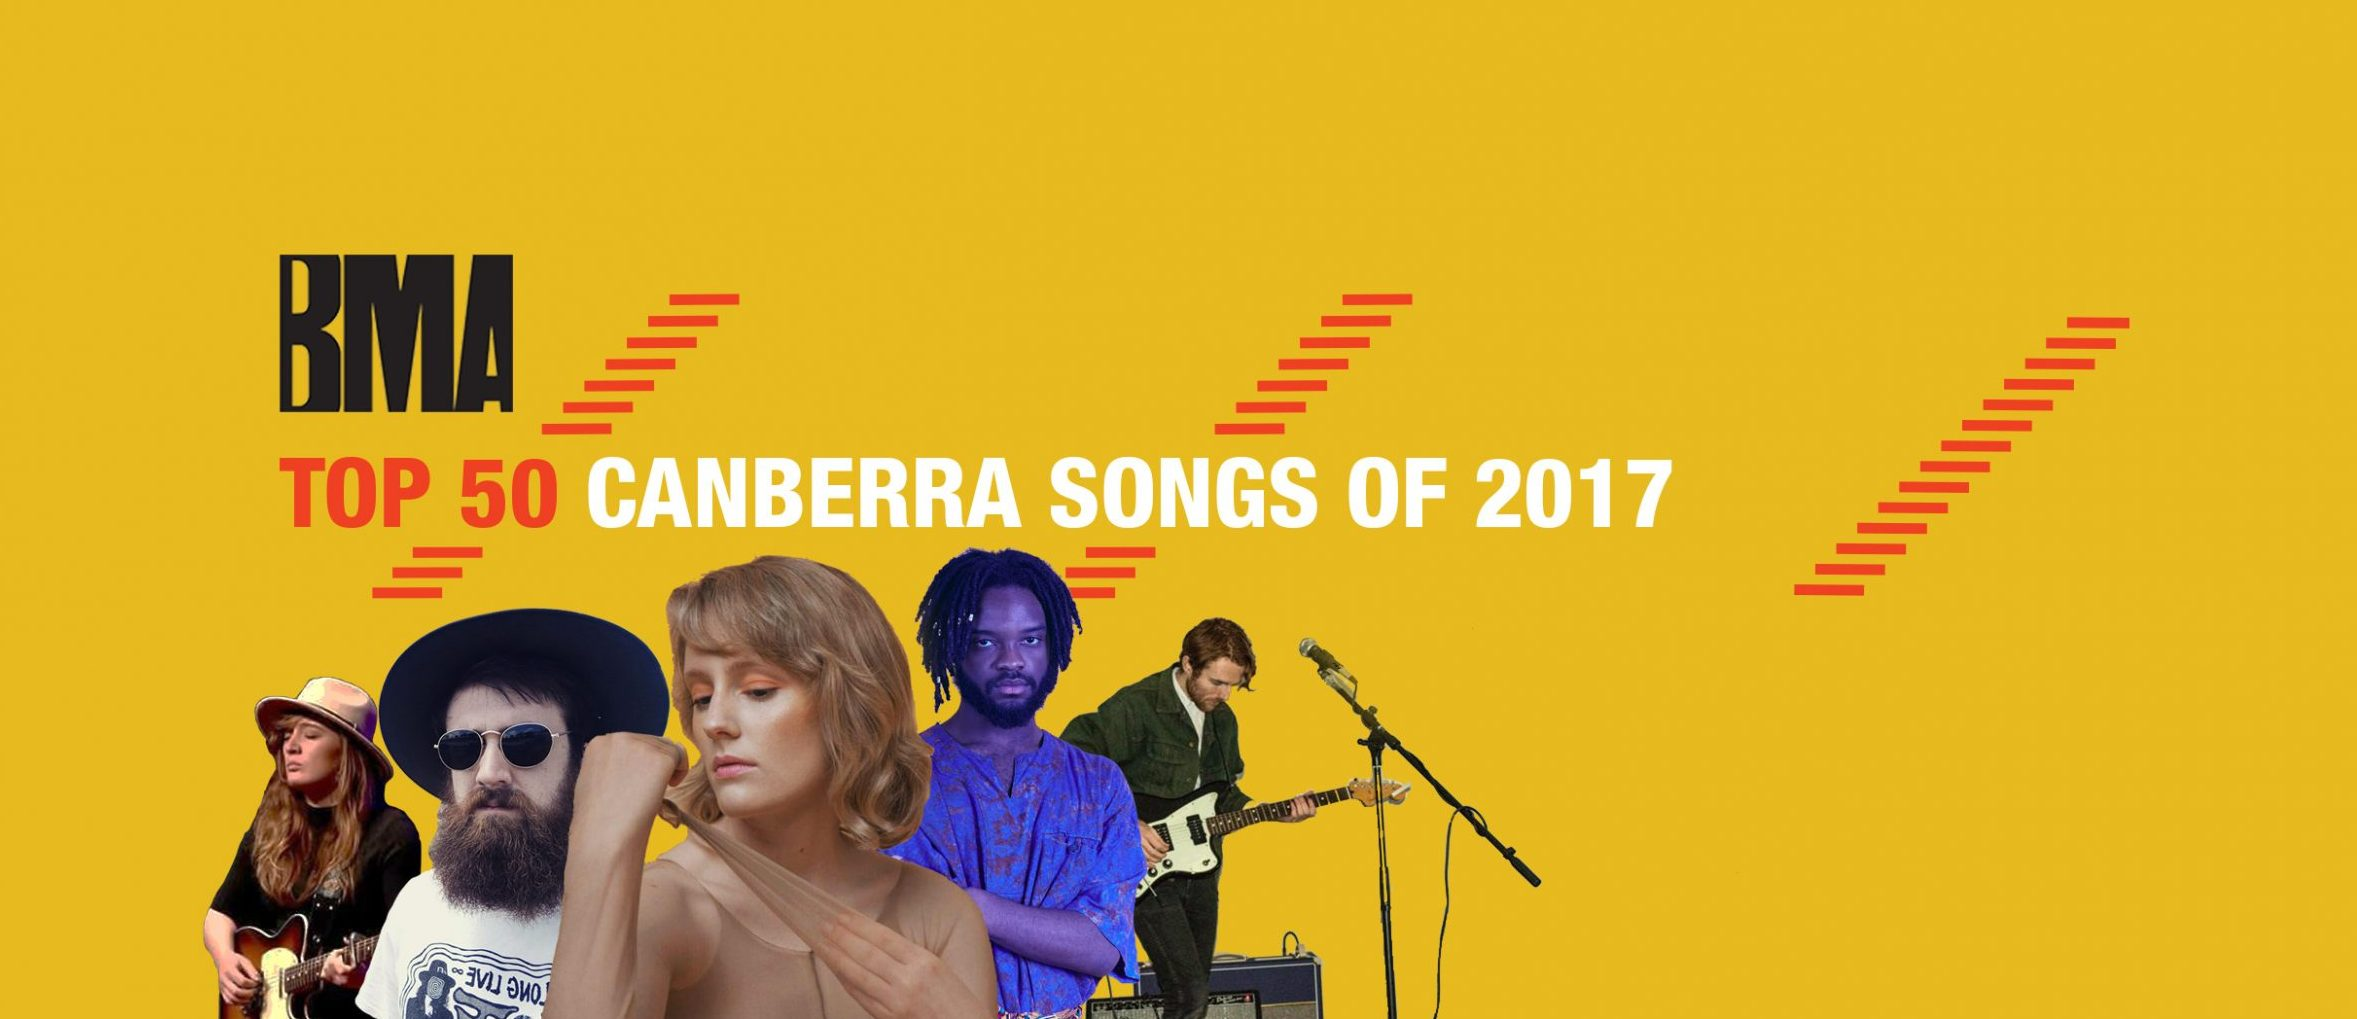 BMA's Top 50 Canberra Songs Of 2017